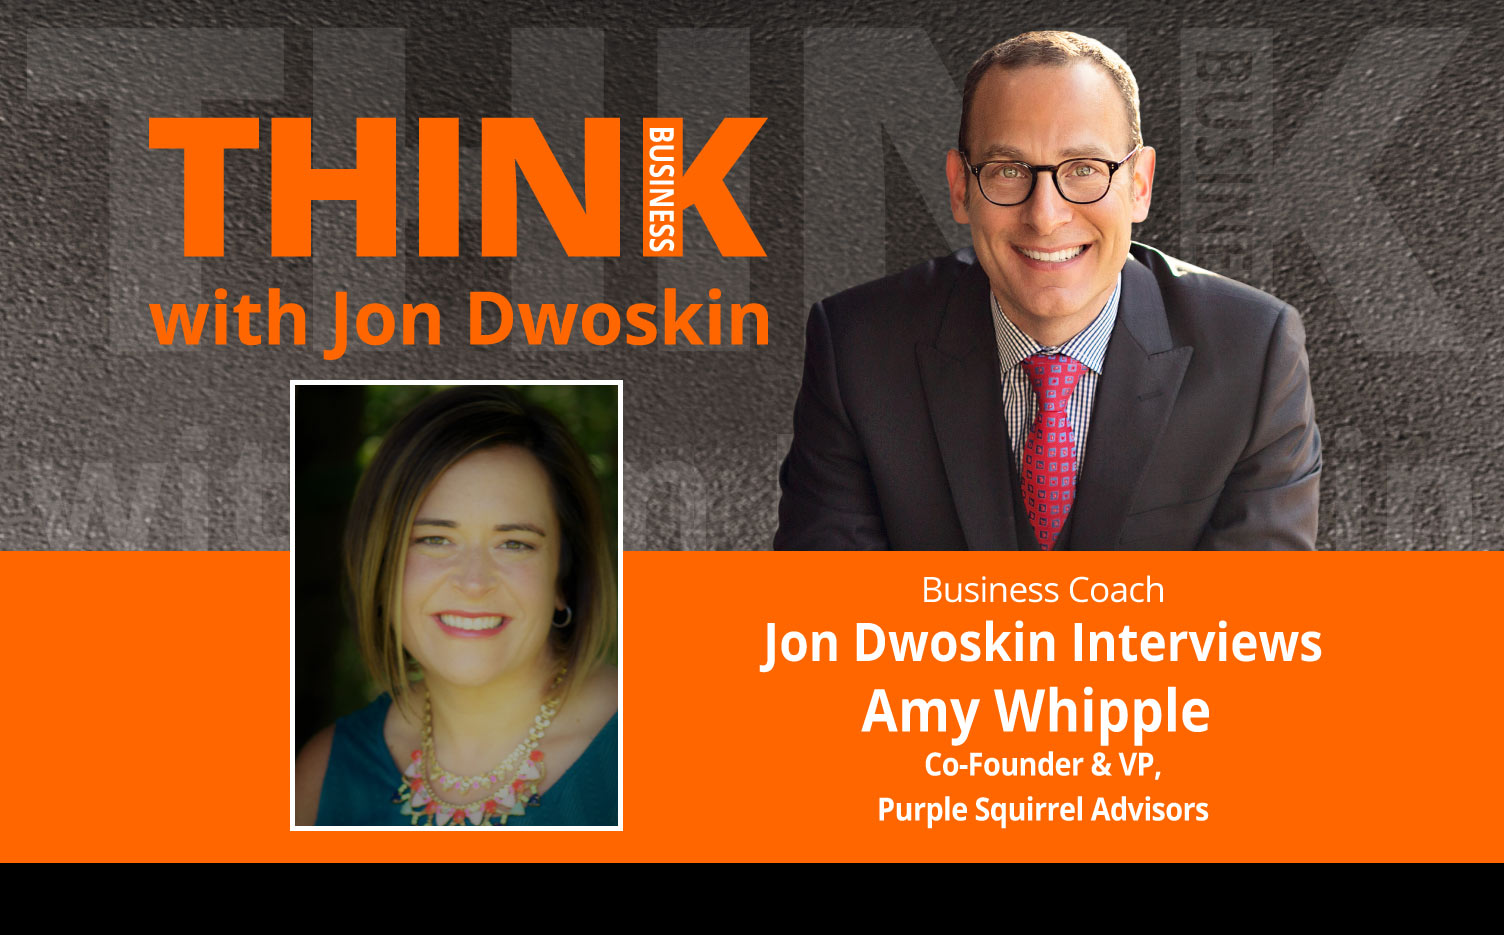 THINK Business: Jon Dwoskin Interviews Amy Whipple, Co-Founder & VP, Purple Squirrel Advisors